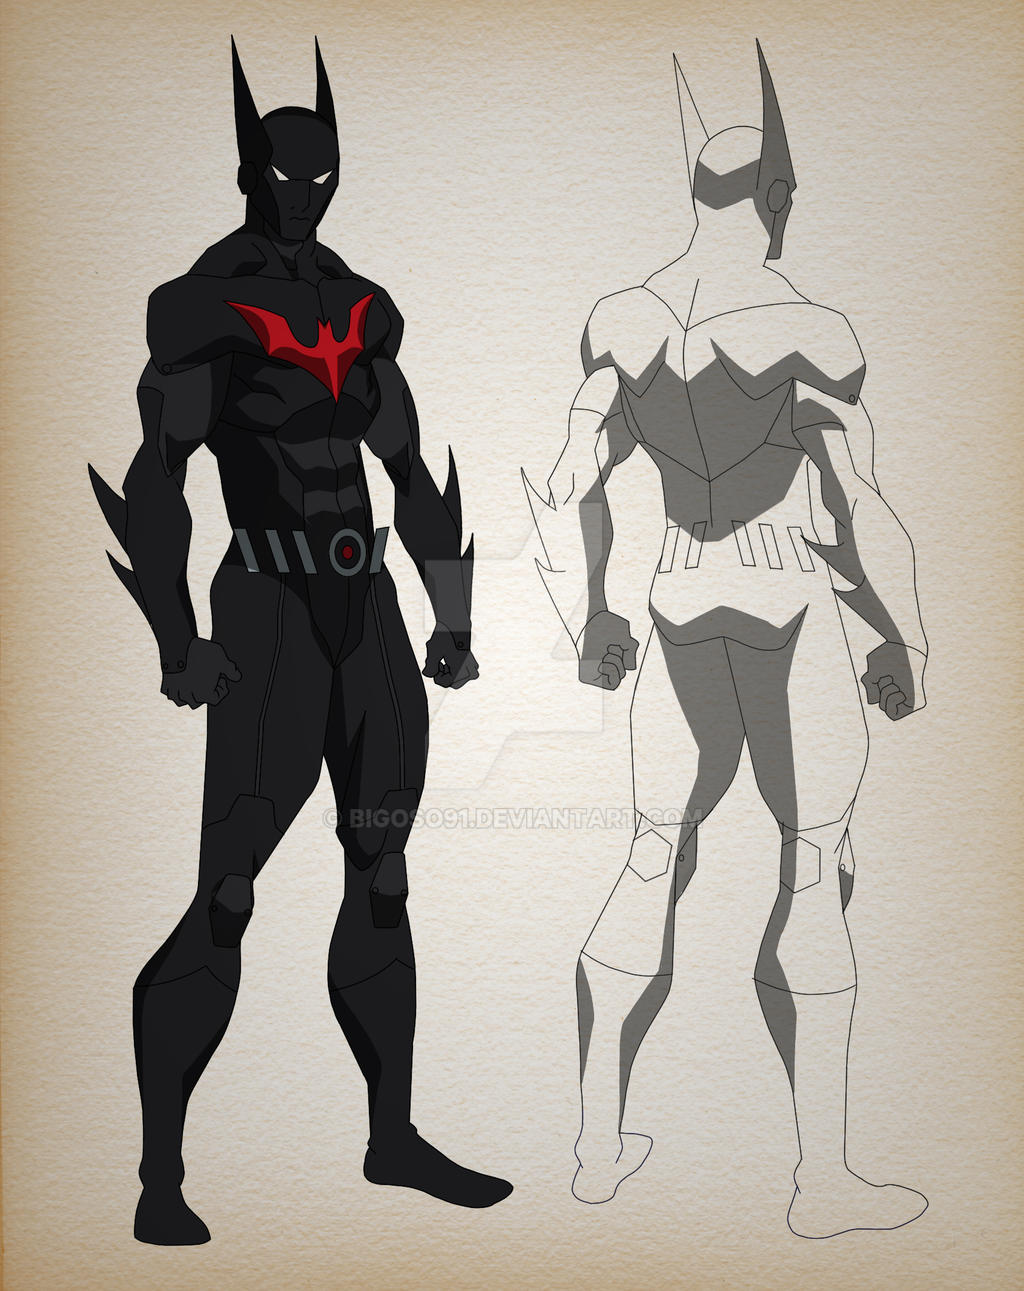 Character Design Deviantart : Batman beyond character design by bigoso on deviantart